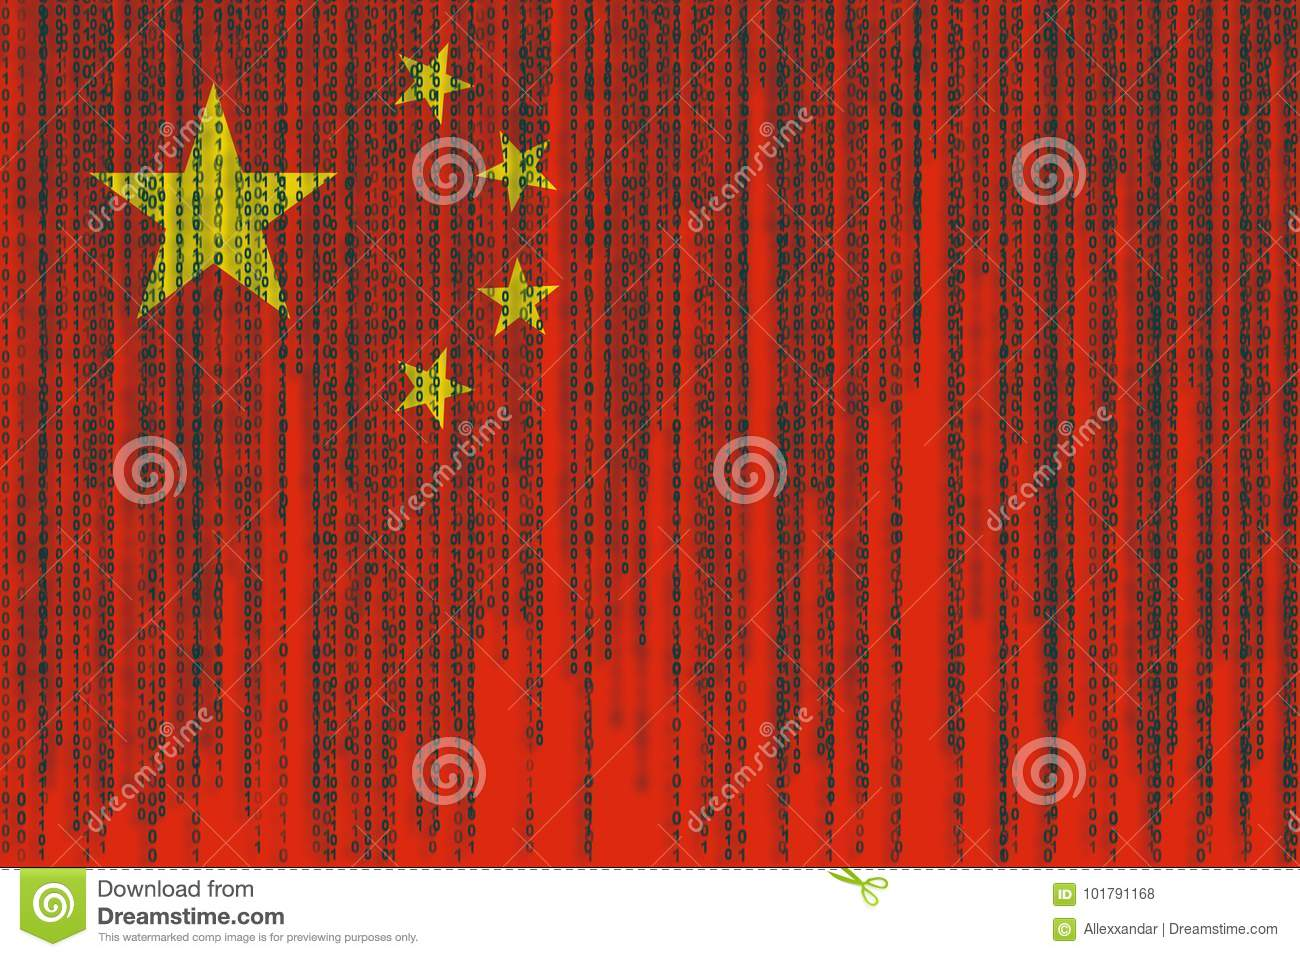 Data Protection China Flag. Chines Flag With Binary Code. Stock Illustration - Illustration of national. number: 101791168